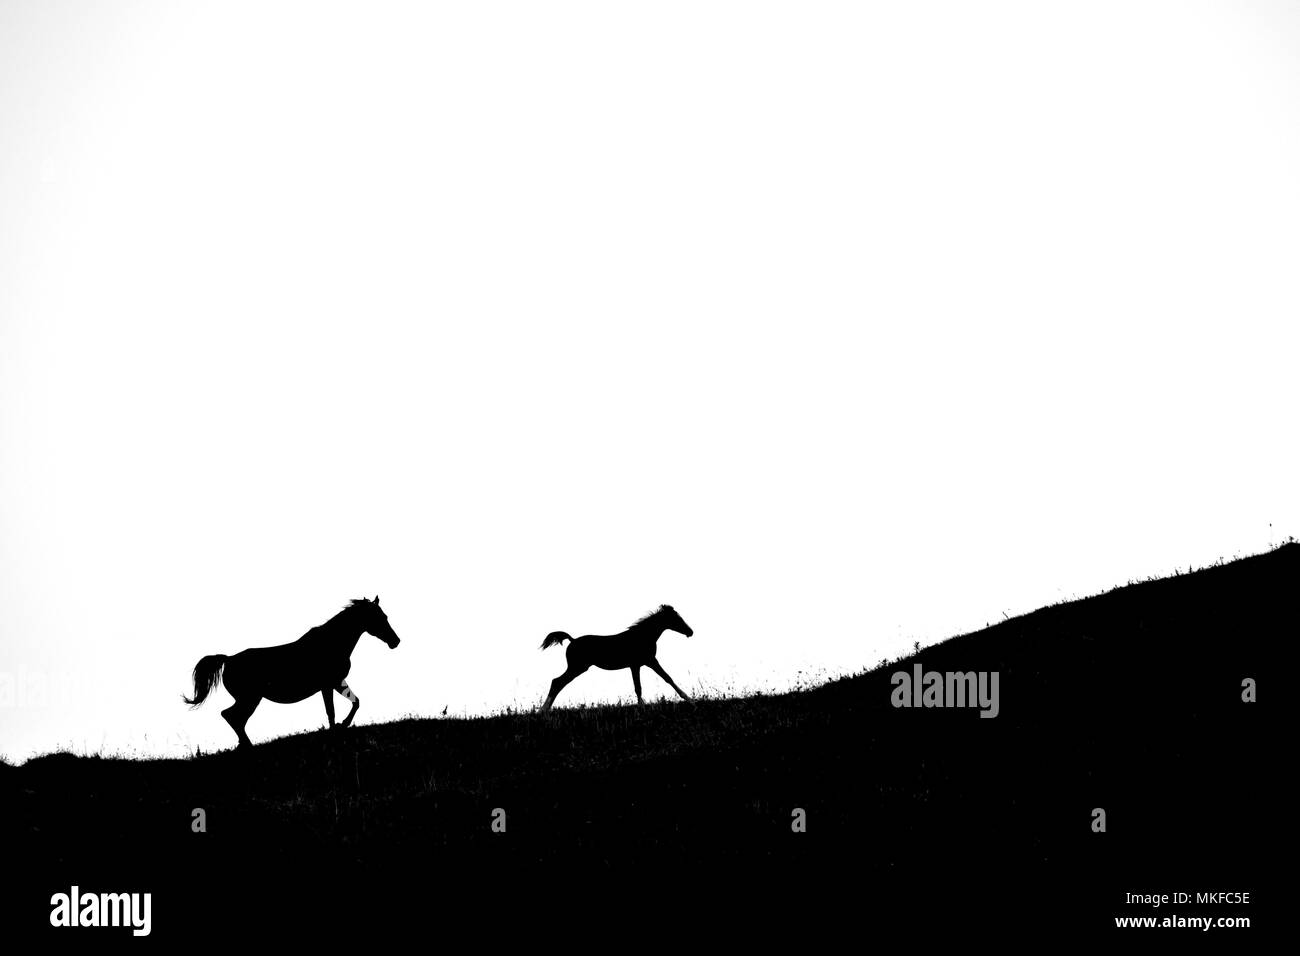 Silhouette of Mare and foal running on white background - Stock Image